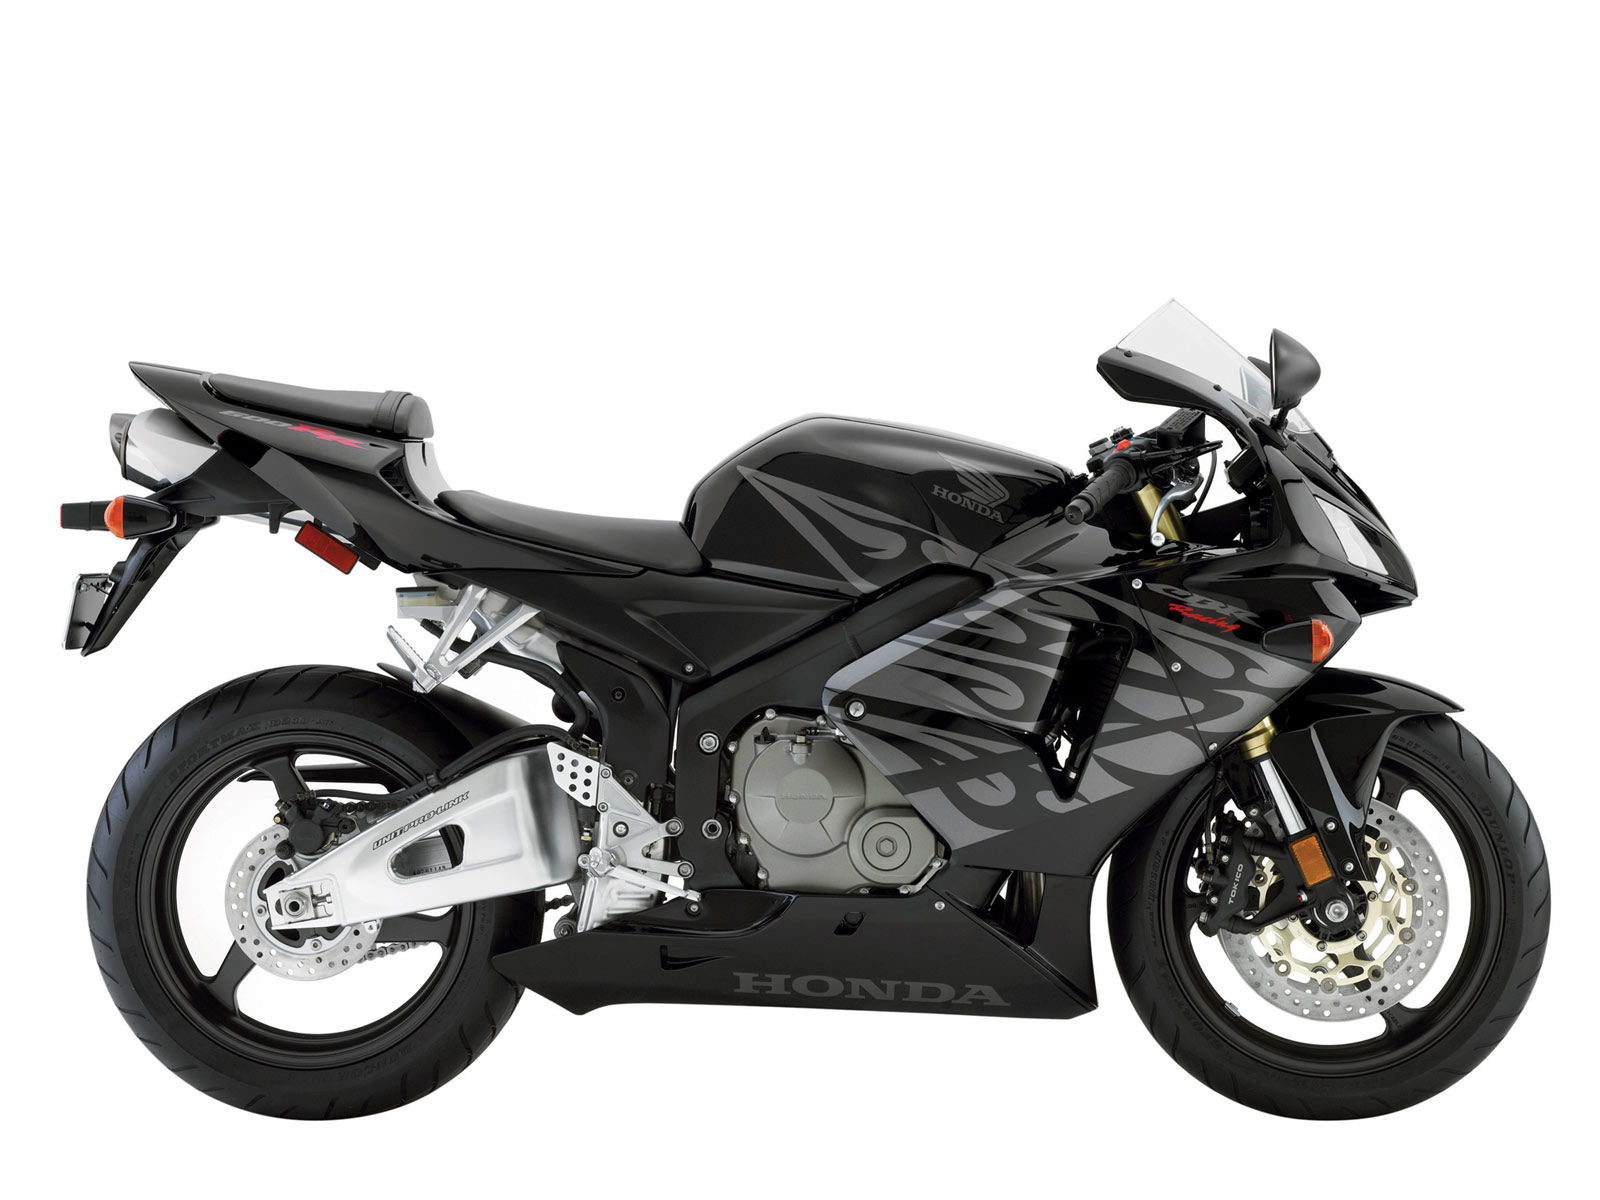 honda cbr 600 rr 2005 specs wallpapers insurance info. Black Bedroom Furniture Sets. Home Design Ideas